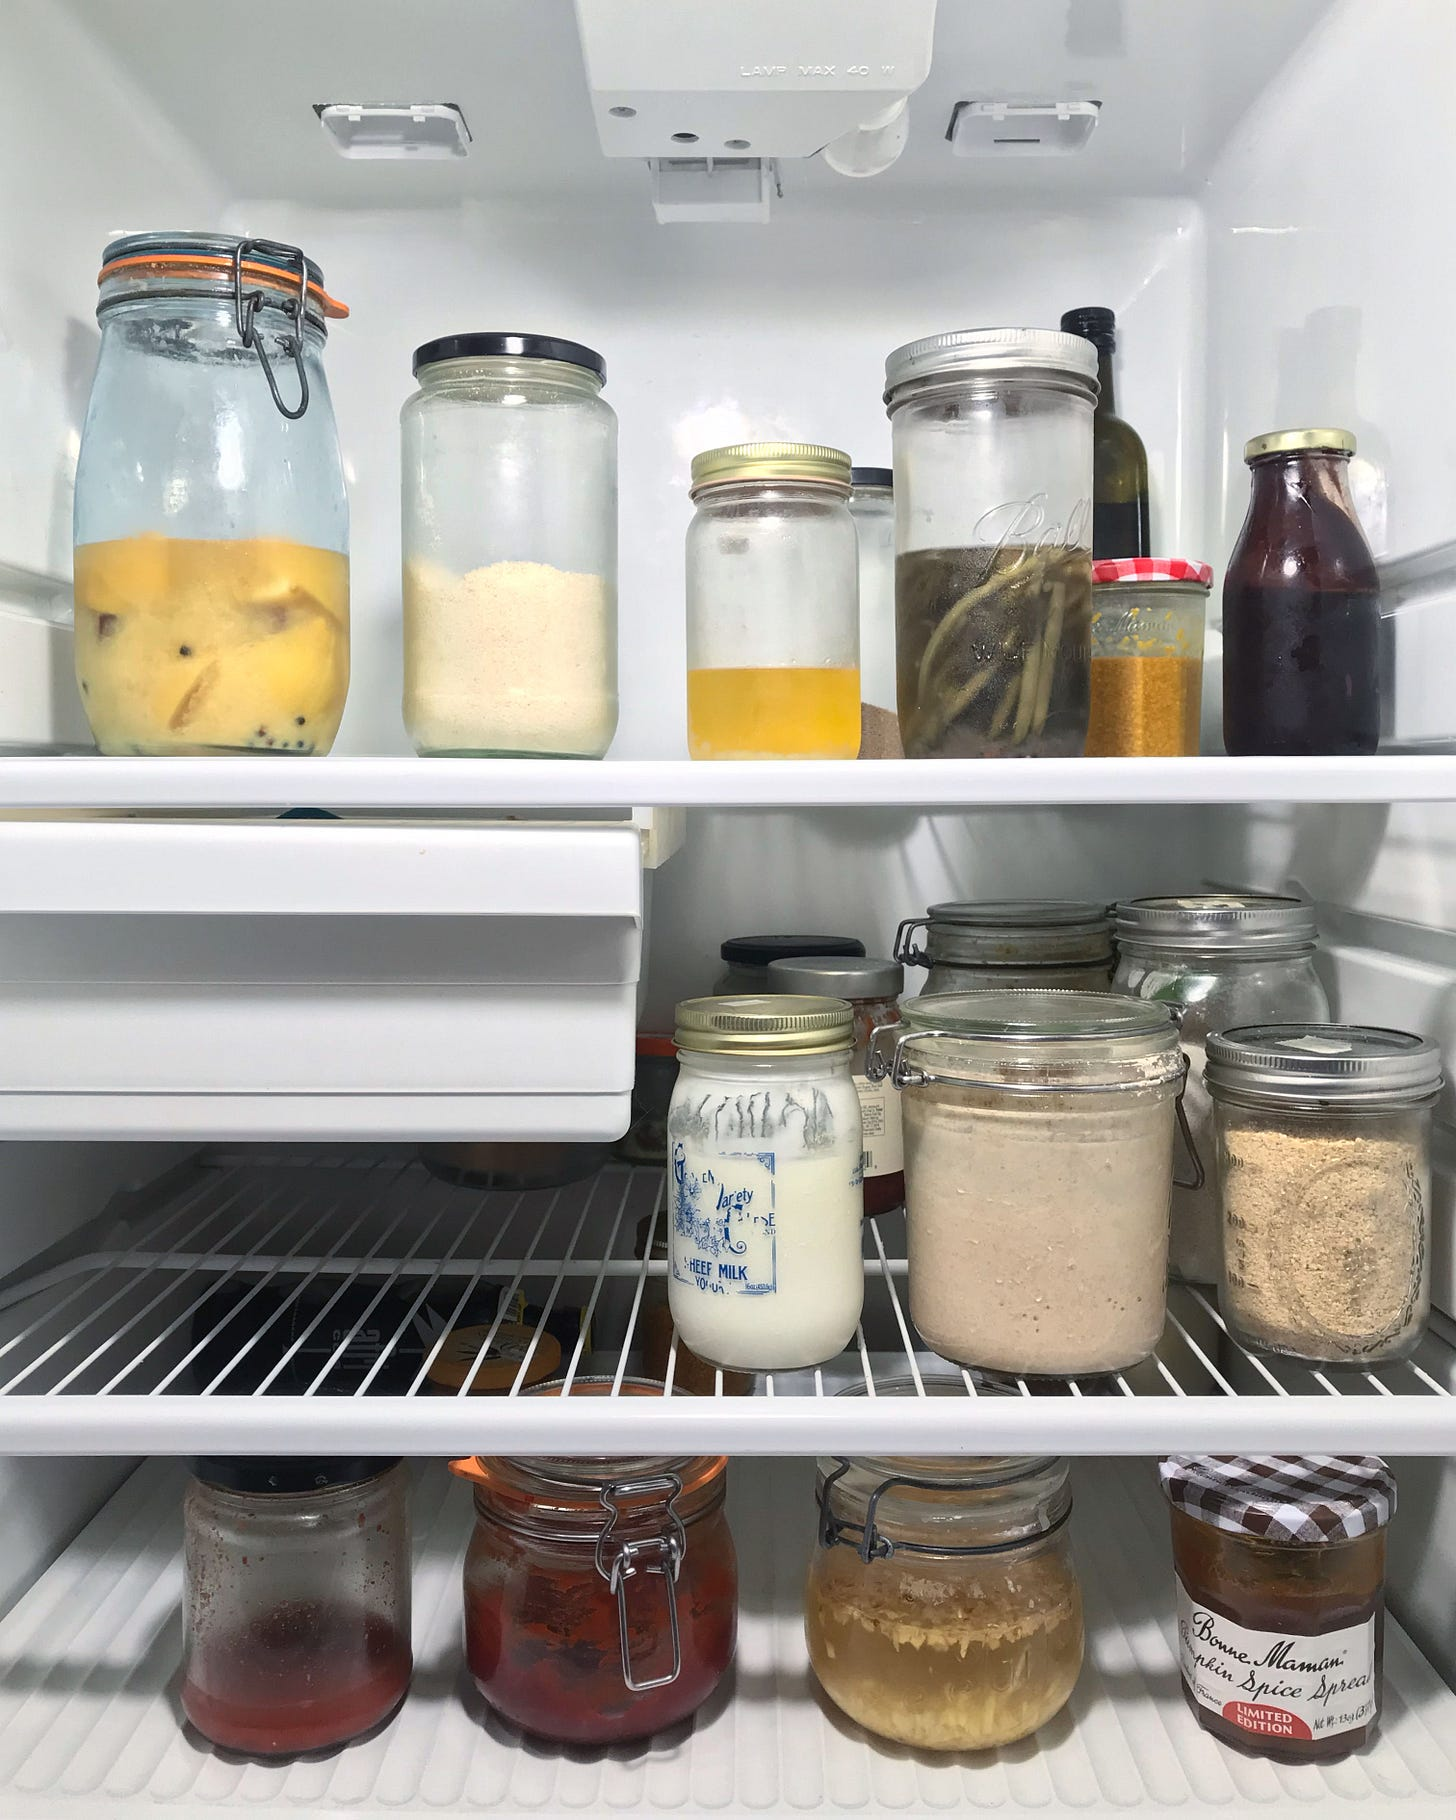 3 shelves in a refrigerator, filled with clear glass jars of various kinds of food